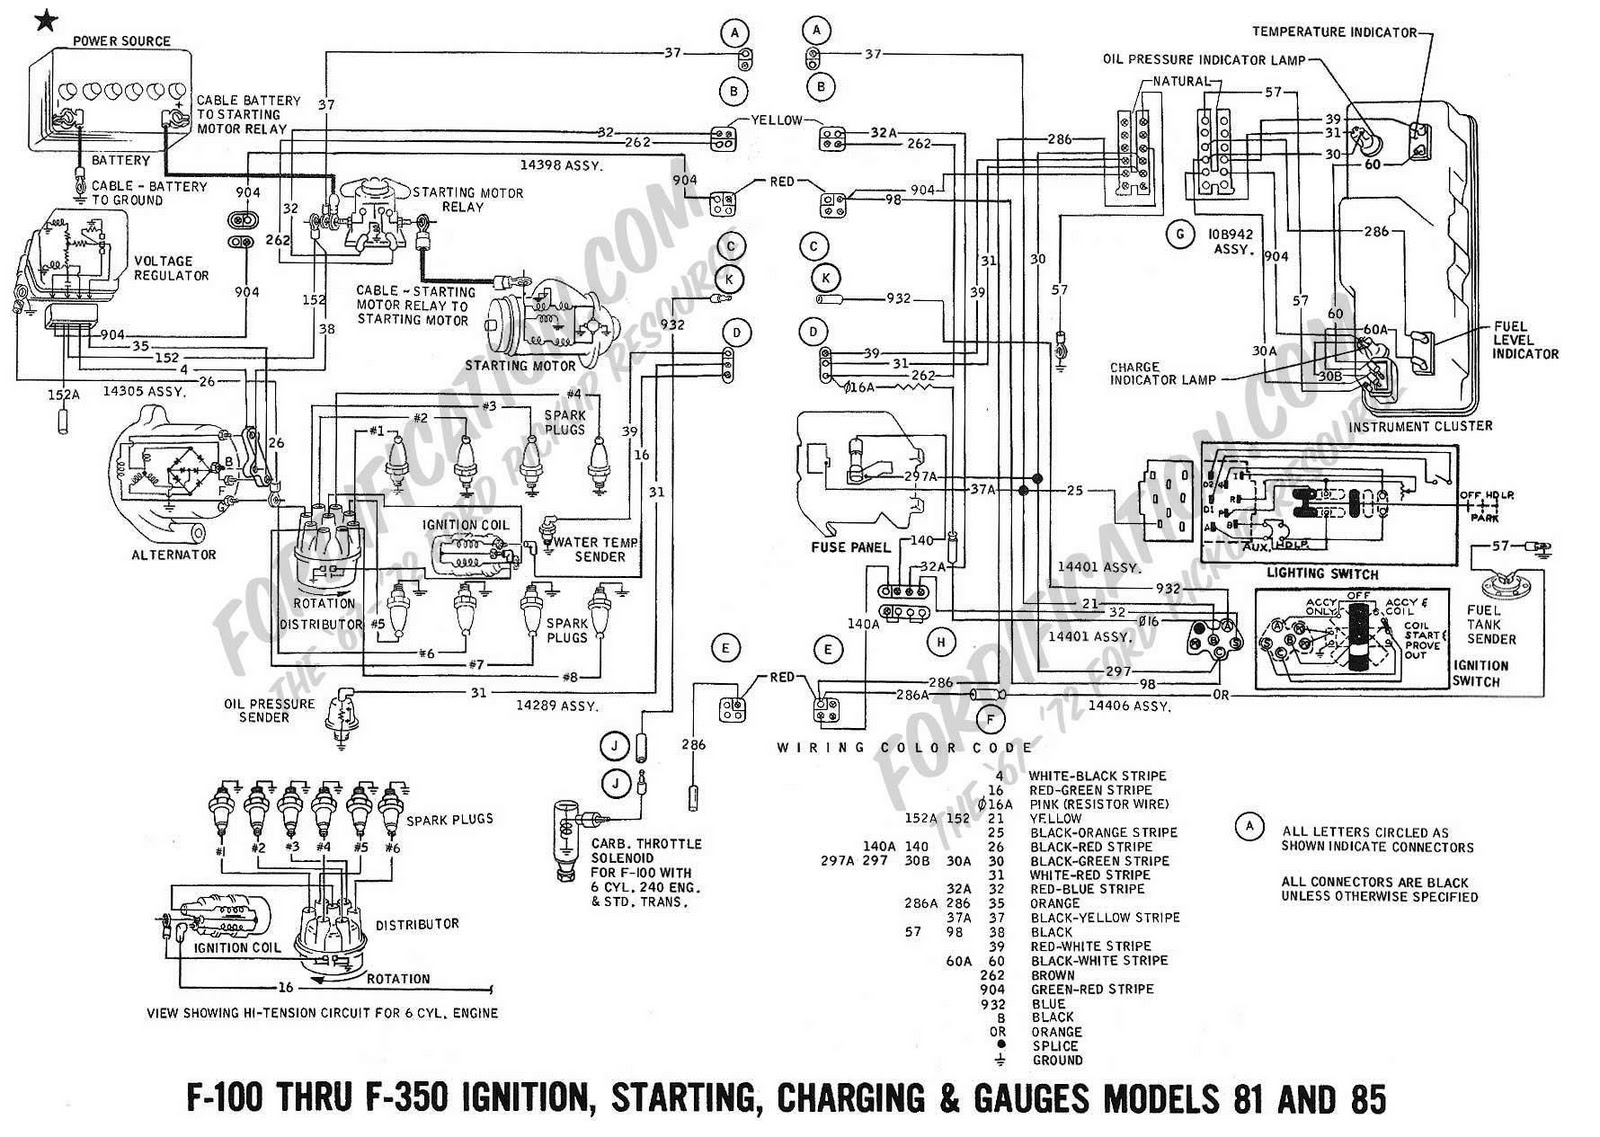 2007 Ford Focus Car Stereo Wiring Diagram Oven Nz 1989 F150 Radio Mustang Ignition Switch S6i Awosurk De U20221969 F100